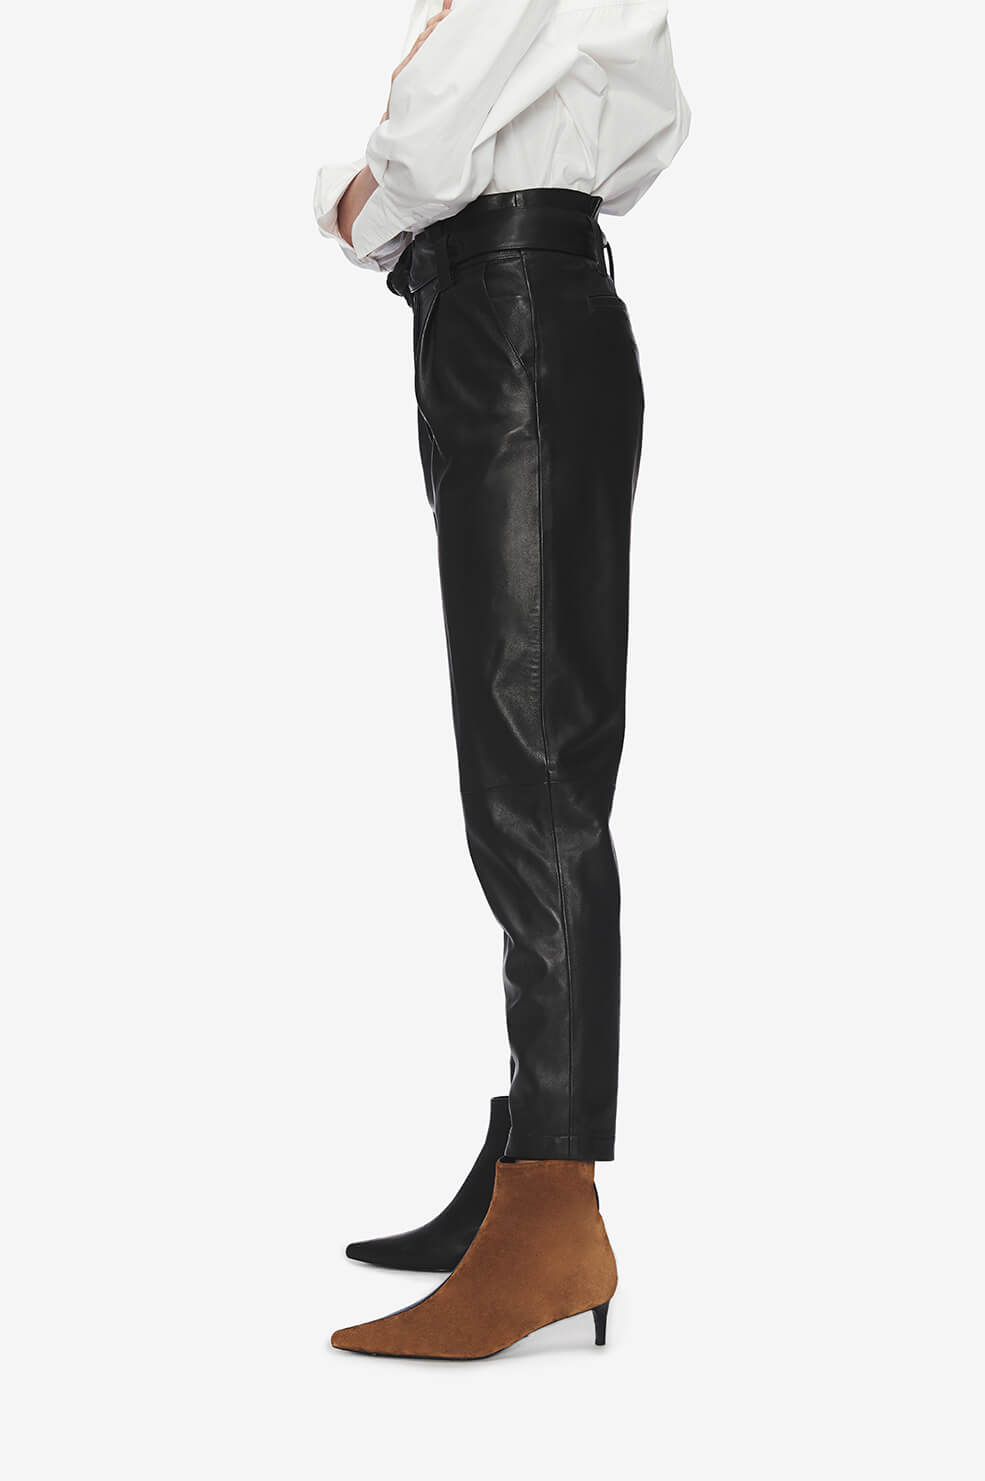 ANINE BING Inez Trouser - Black